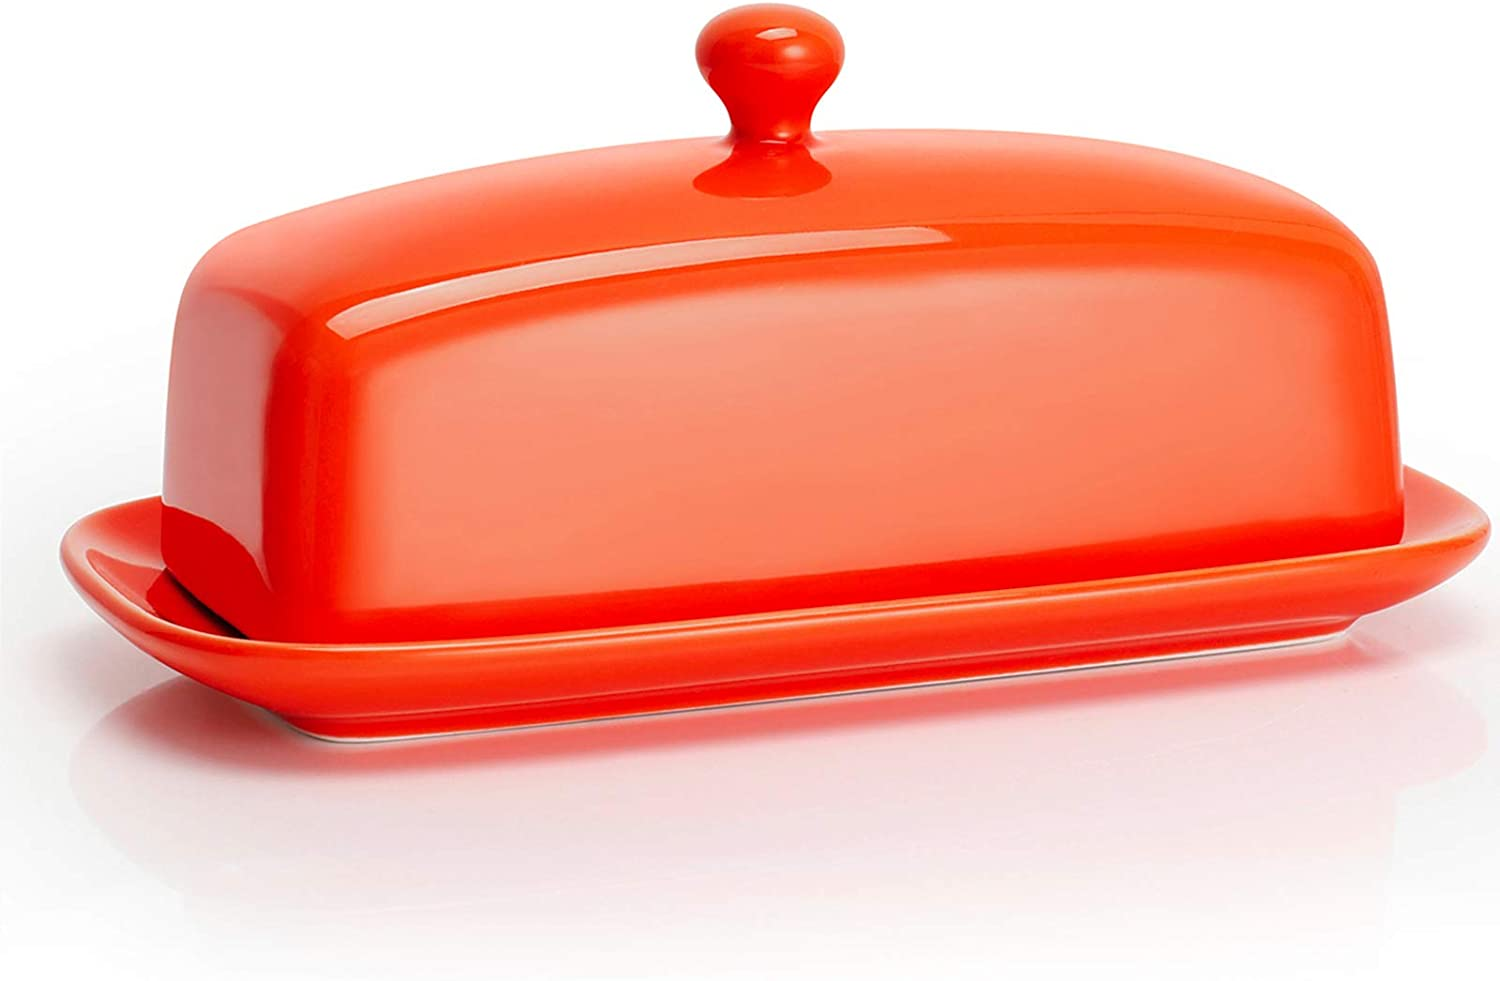 Sweese 307.106 Porcelain Butter Dish with Lid, Perfect for East West Coast Butter, Orange